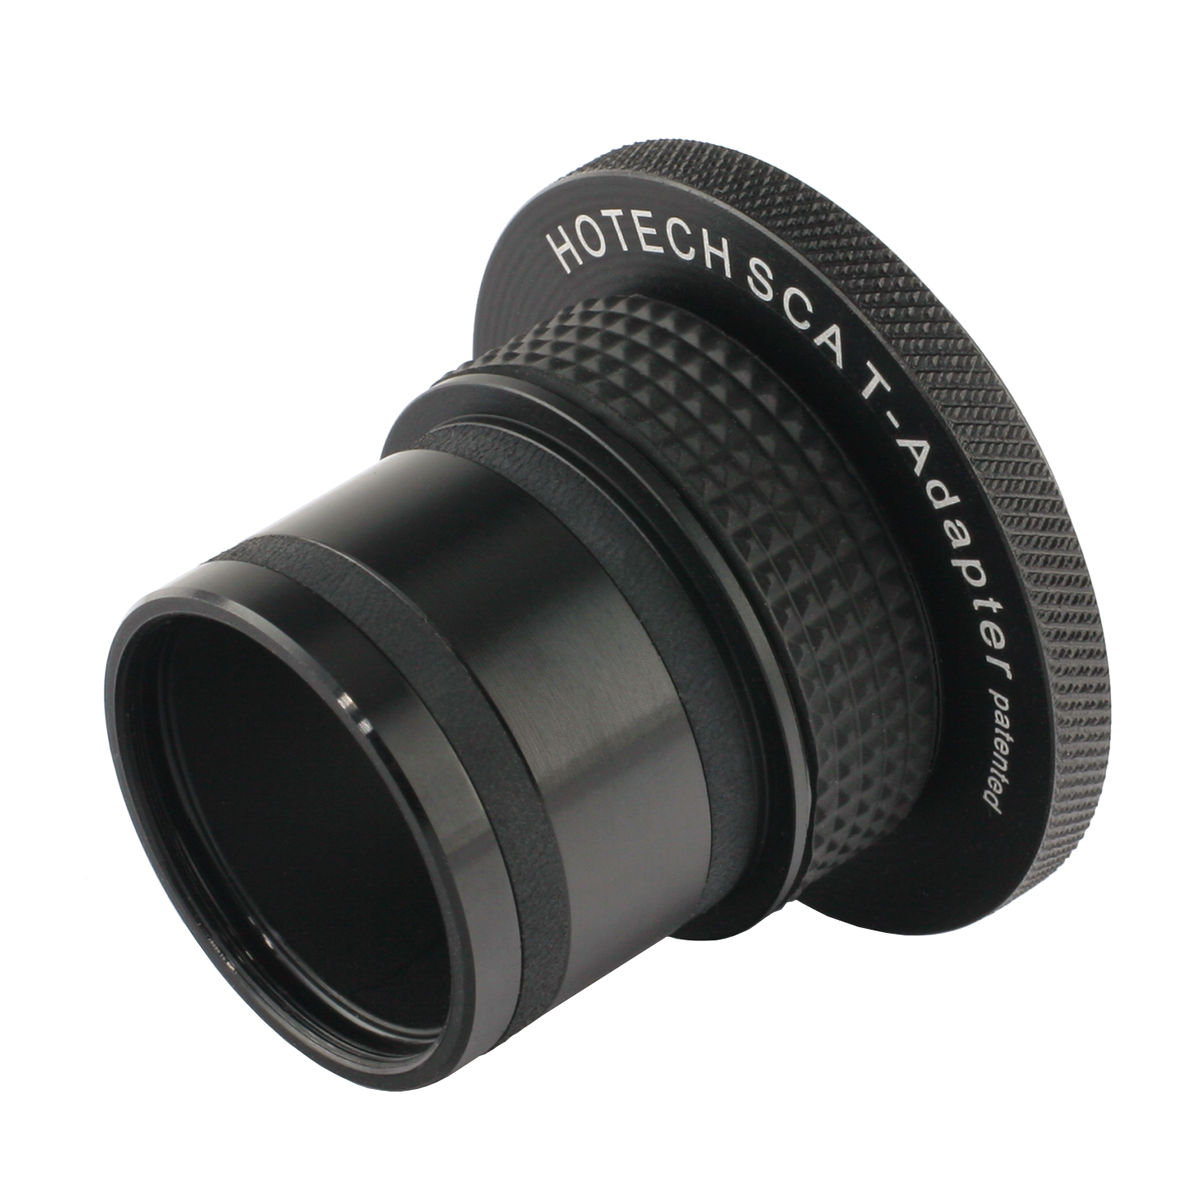 Hotech 1.25'' Self-Centering (SCA) T-Adapter